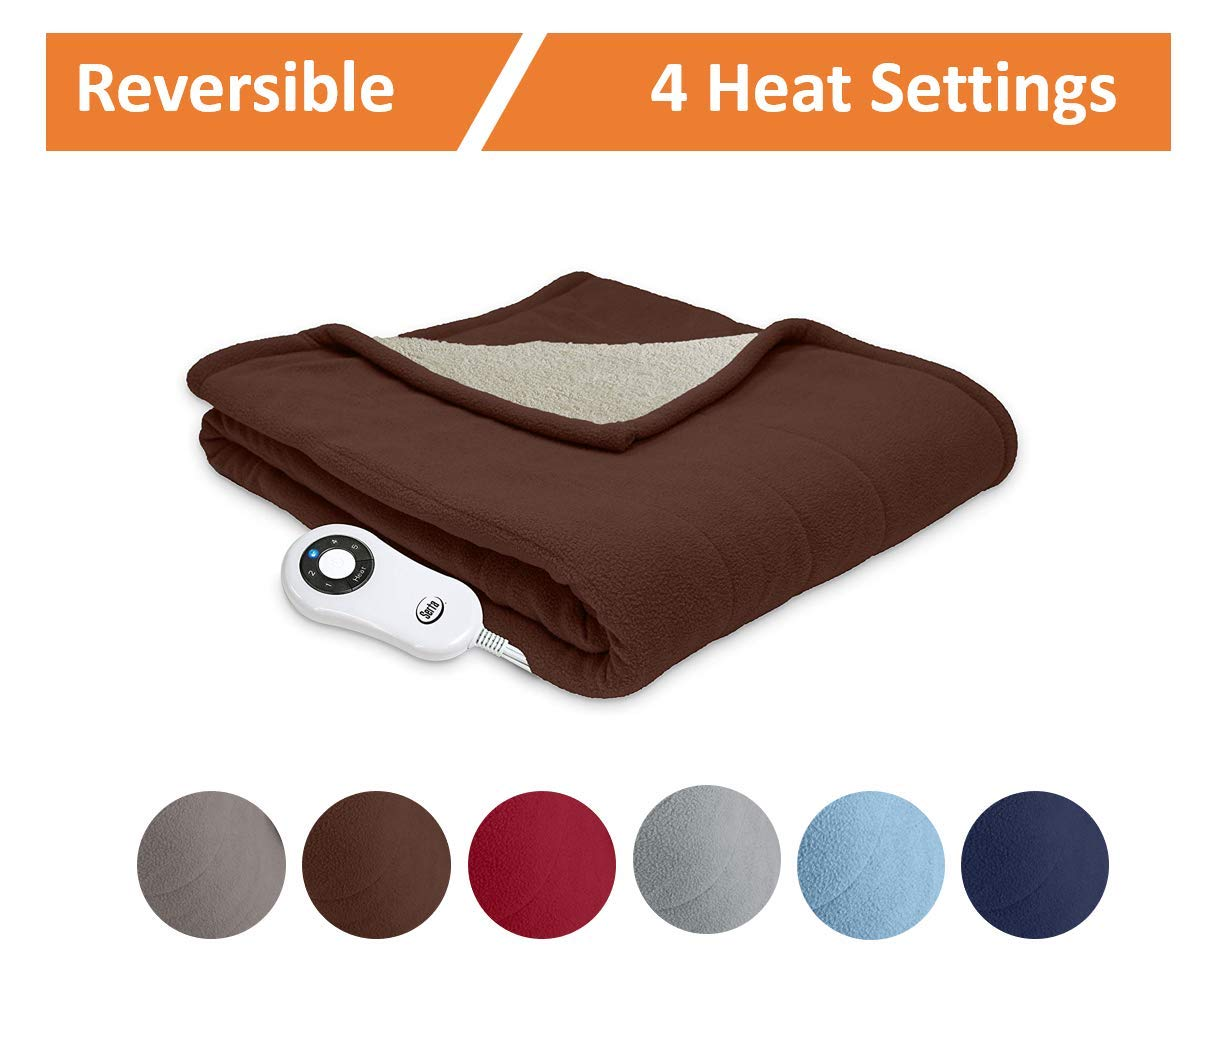 Serta | Reversible Sherpa / Fleece Heated Electric Throw Blanket for Bed or Couch (Beige) Perfect Fit 861065